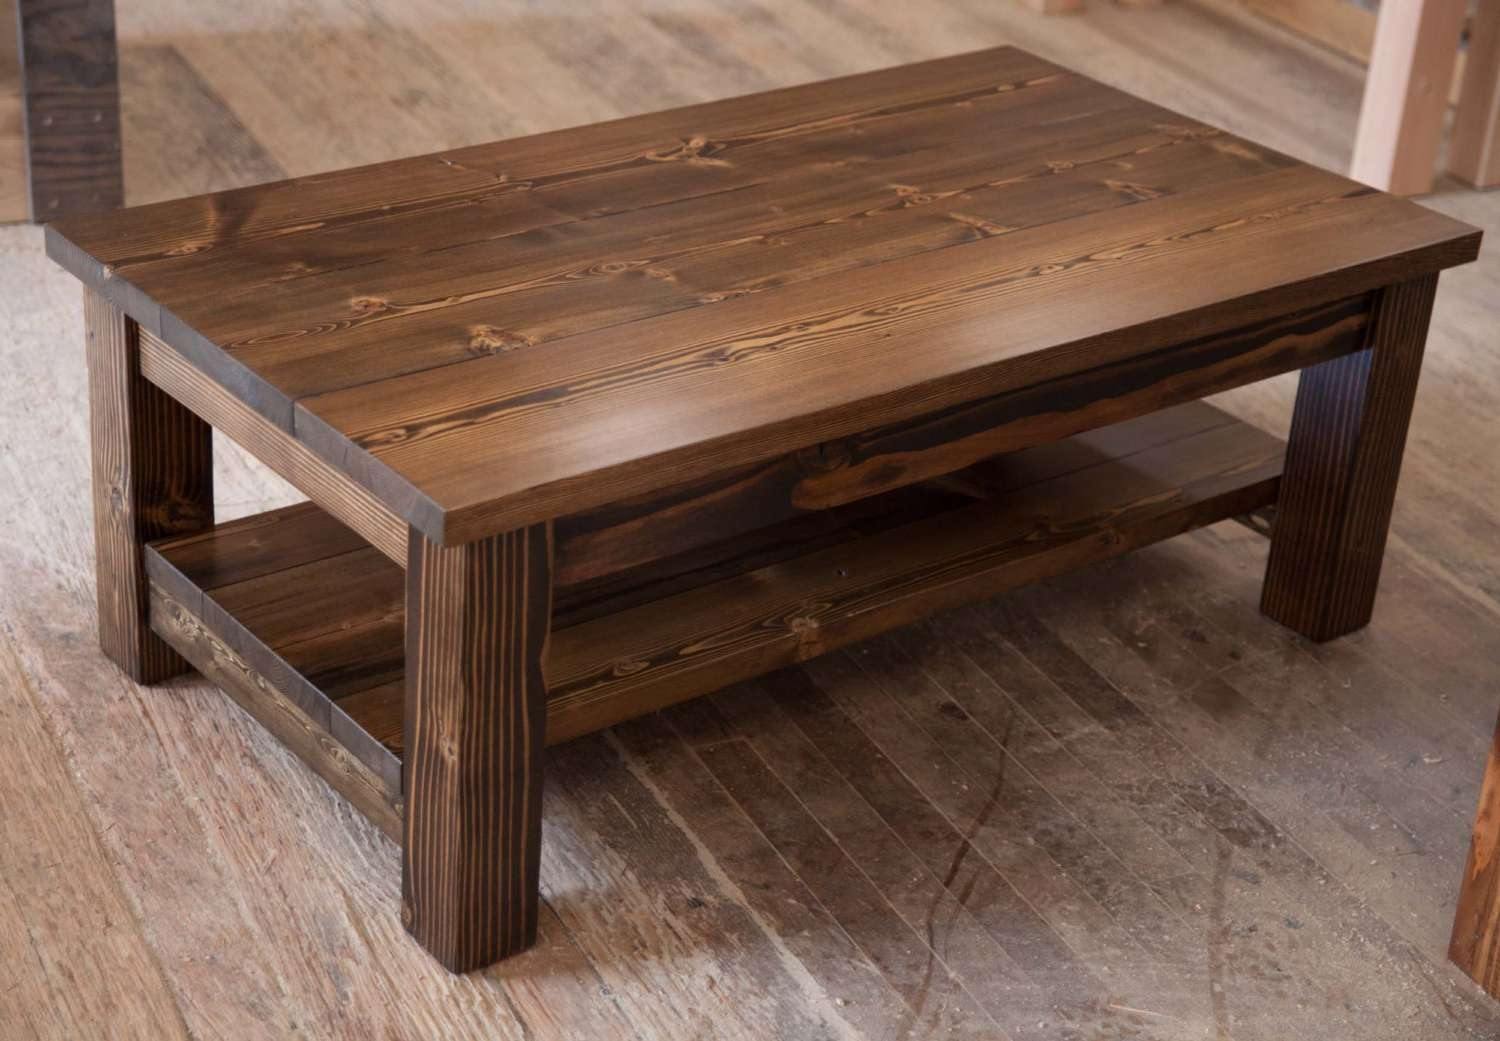 Popular Solid Oak Coffee Tables Intended For Ideas Rustic Wood Coffee Table : Choosing Rustic Wood Coffee Table (View 14 of 20)